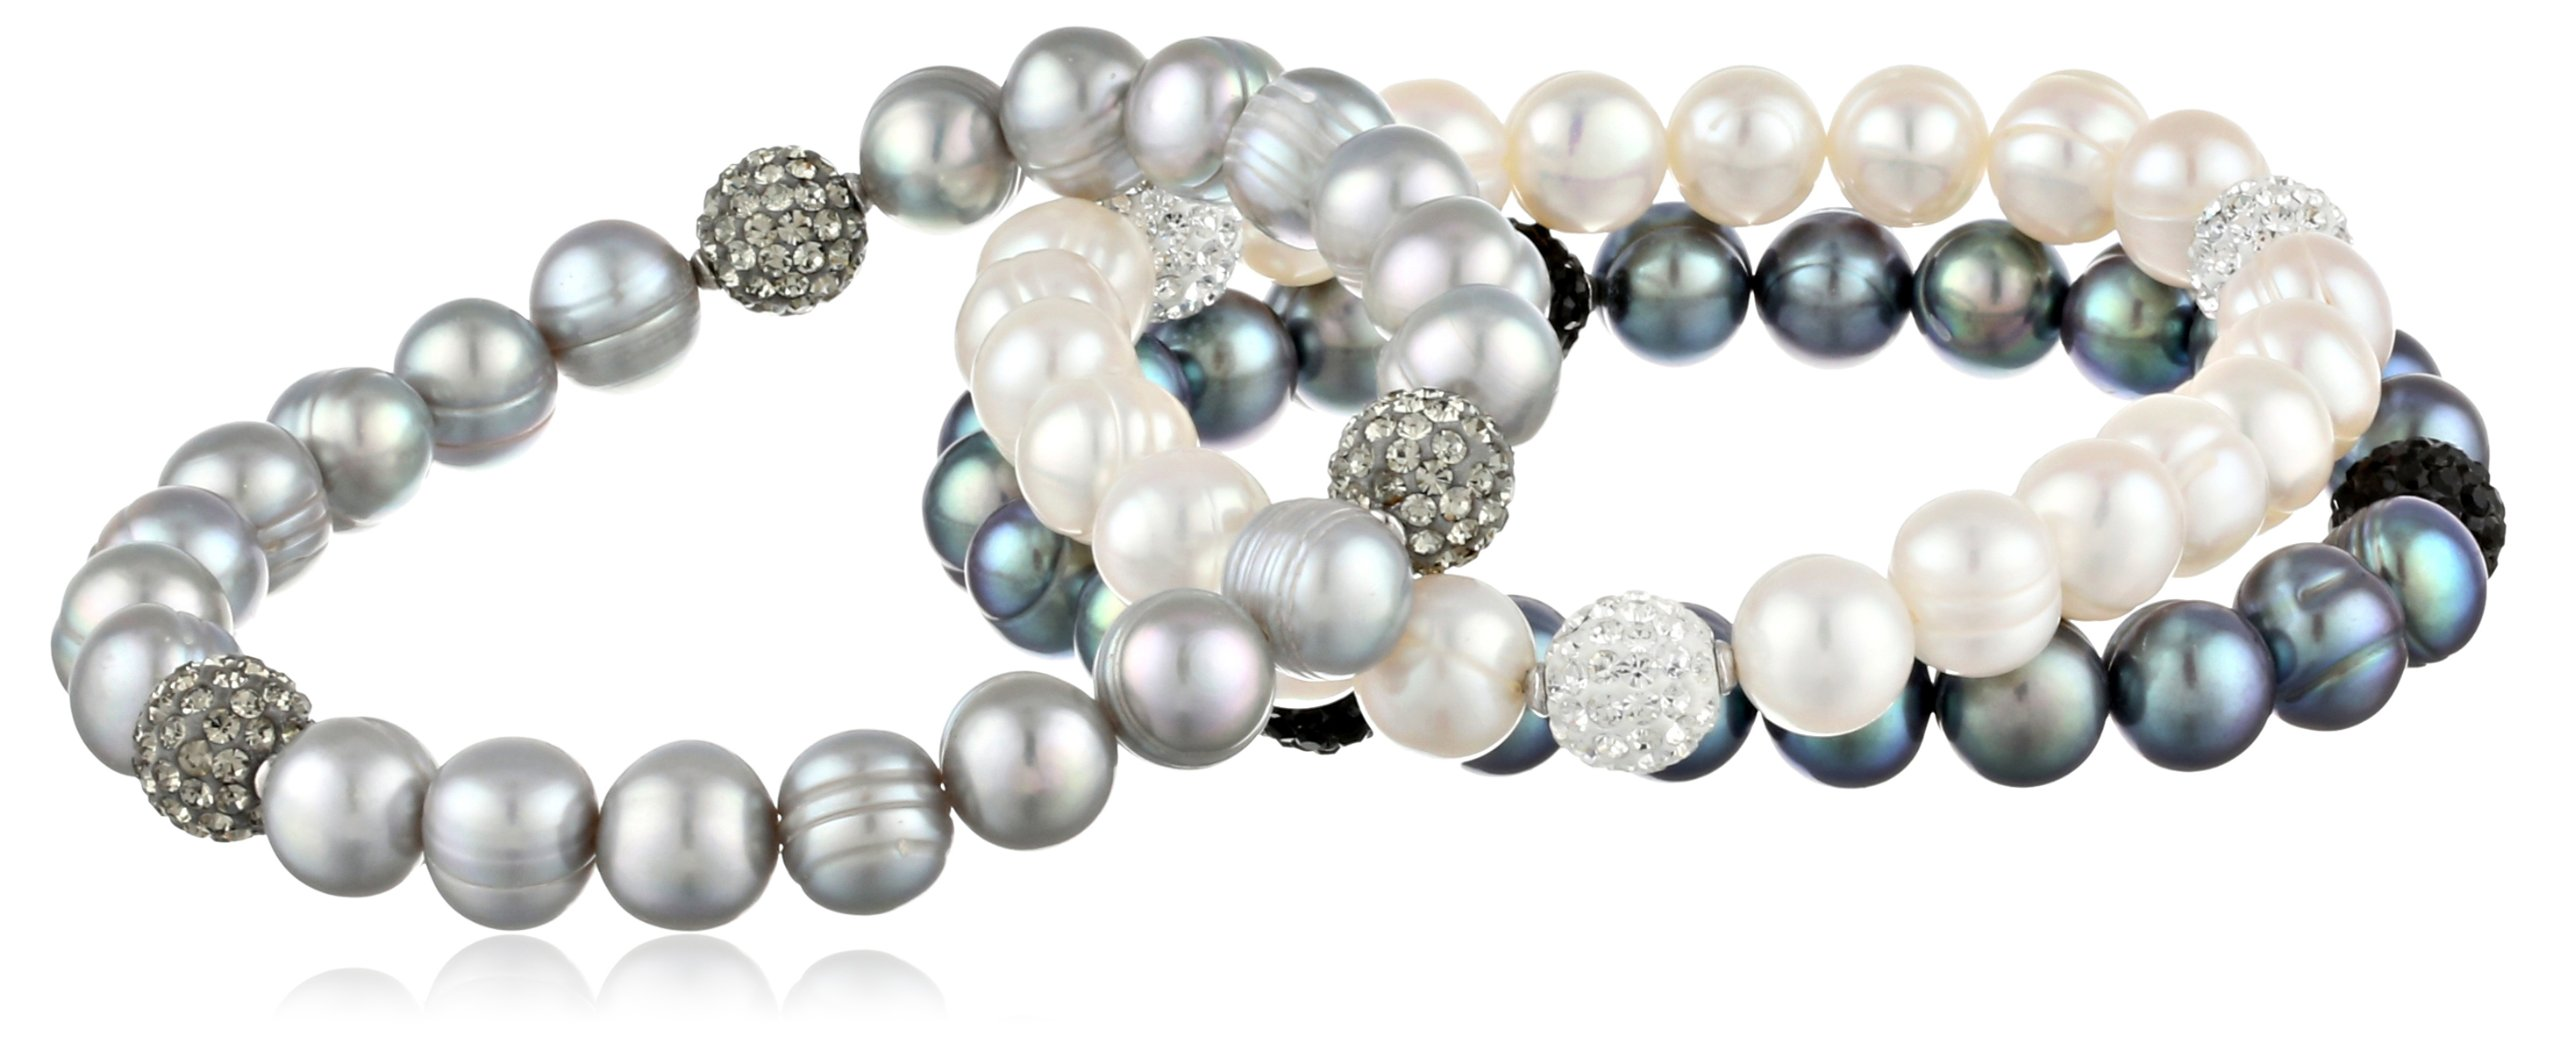 Honora ''Pop Star'' Black, White and Gray Freshwater Cultured Pearl and Crystal 7.5'' Stretch Bracelet